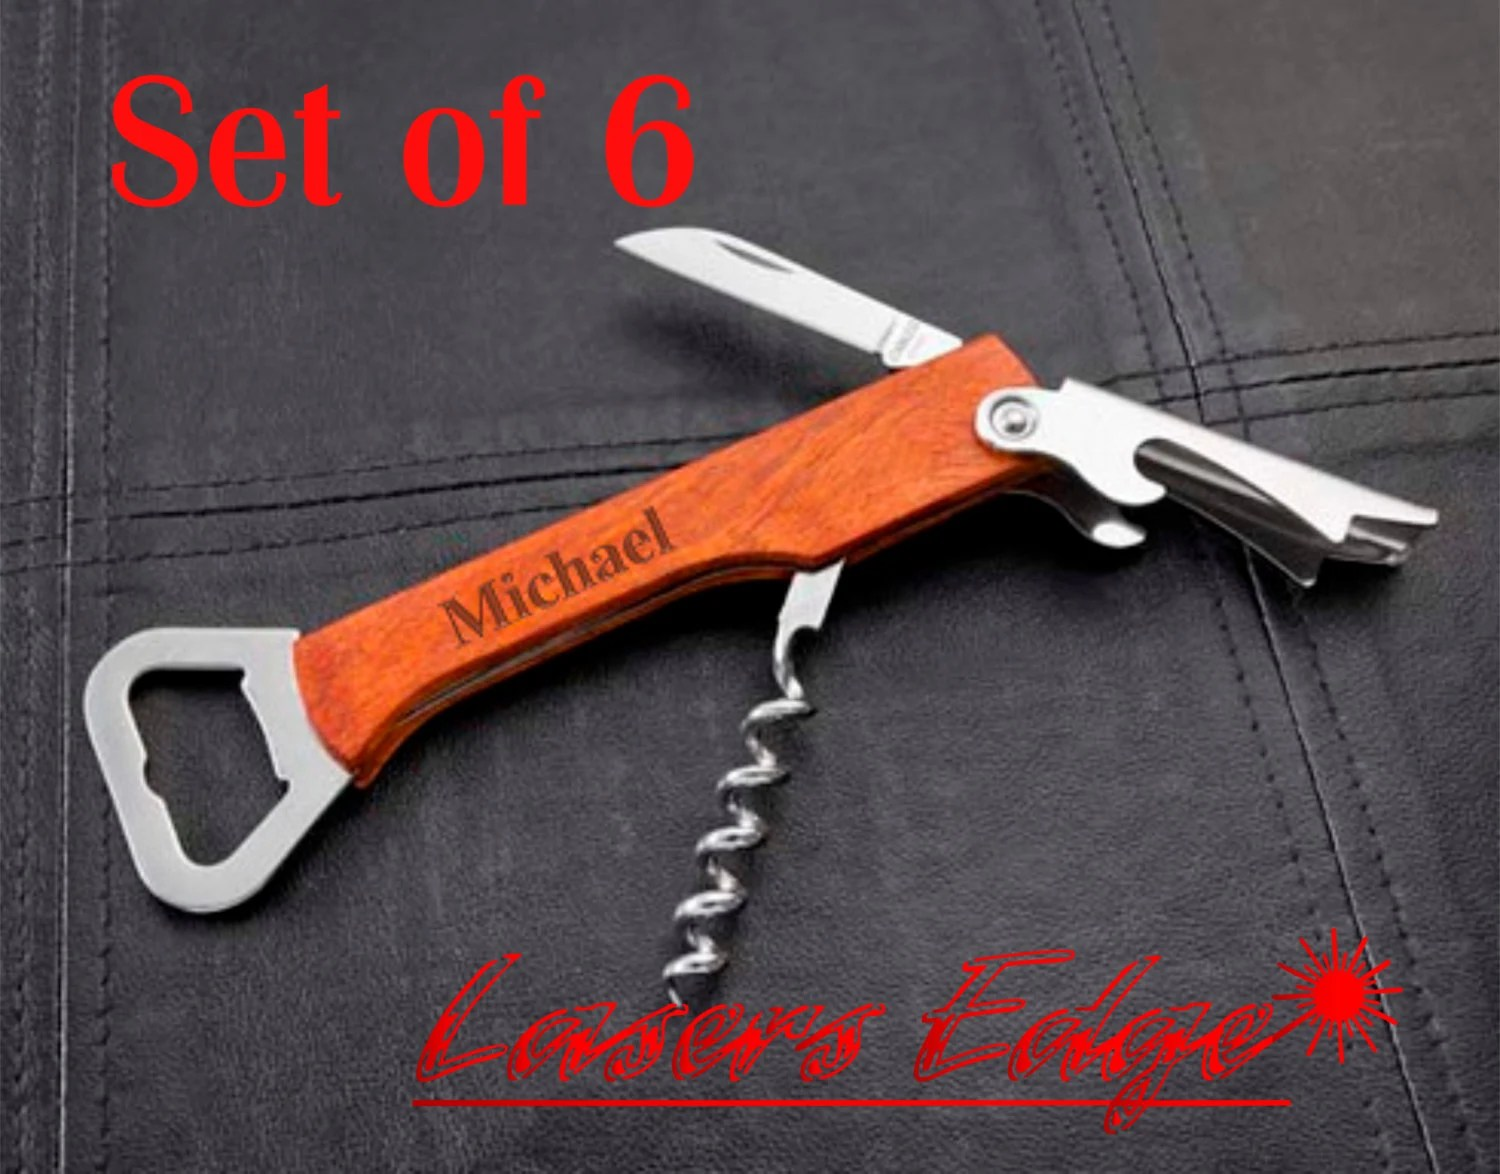 Cool Corkscrew Gifts Set Of 6 Personalized Bottle Openers Engraved Corkscrew